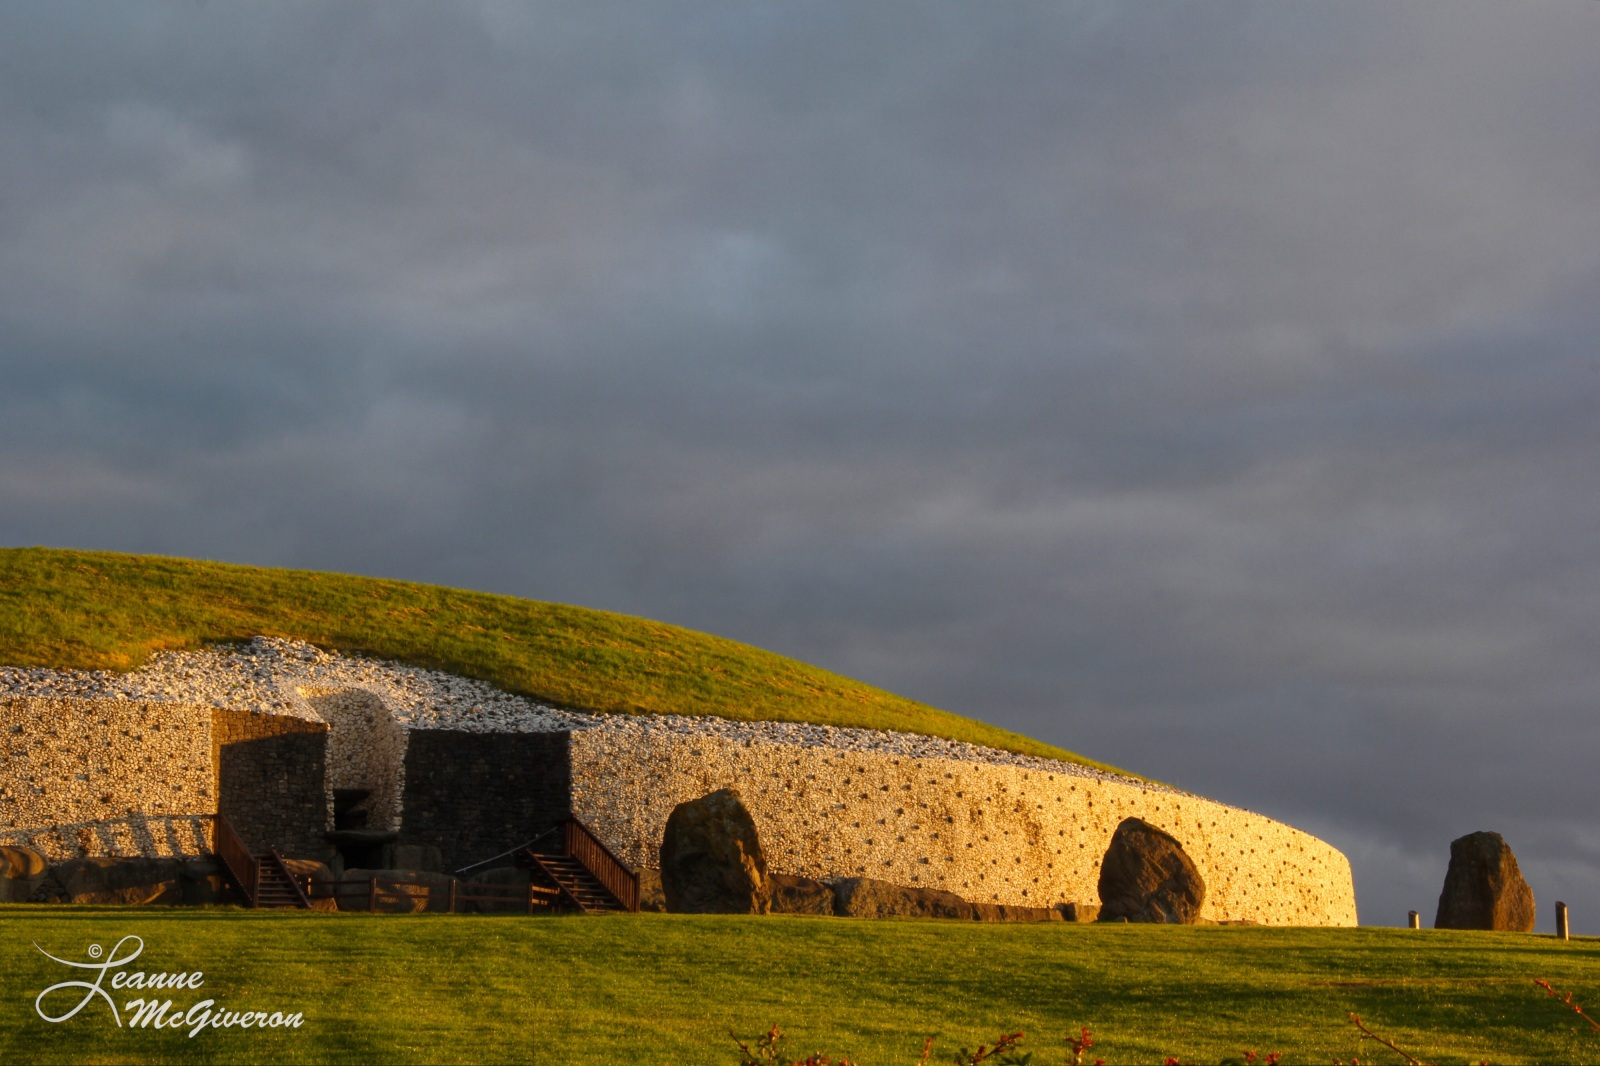 Summer Solstice Sunrise at Newgrange, County Meath